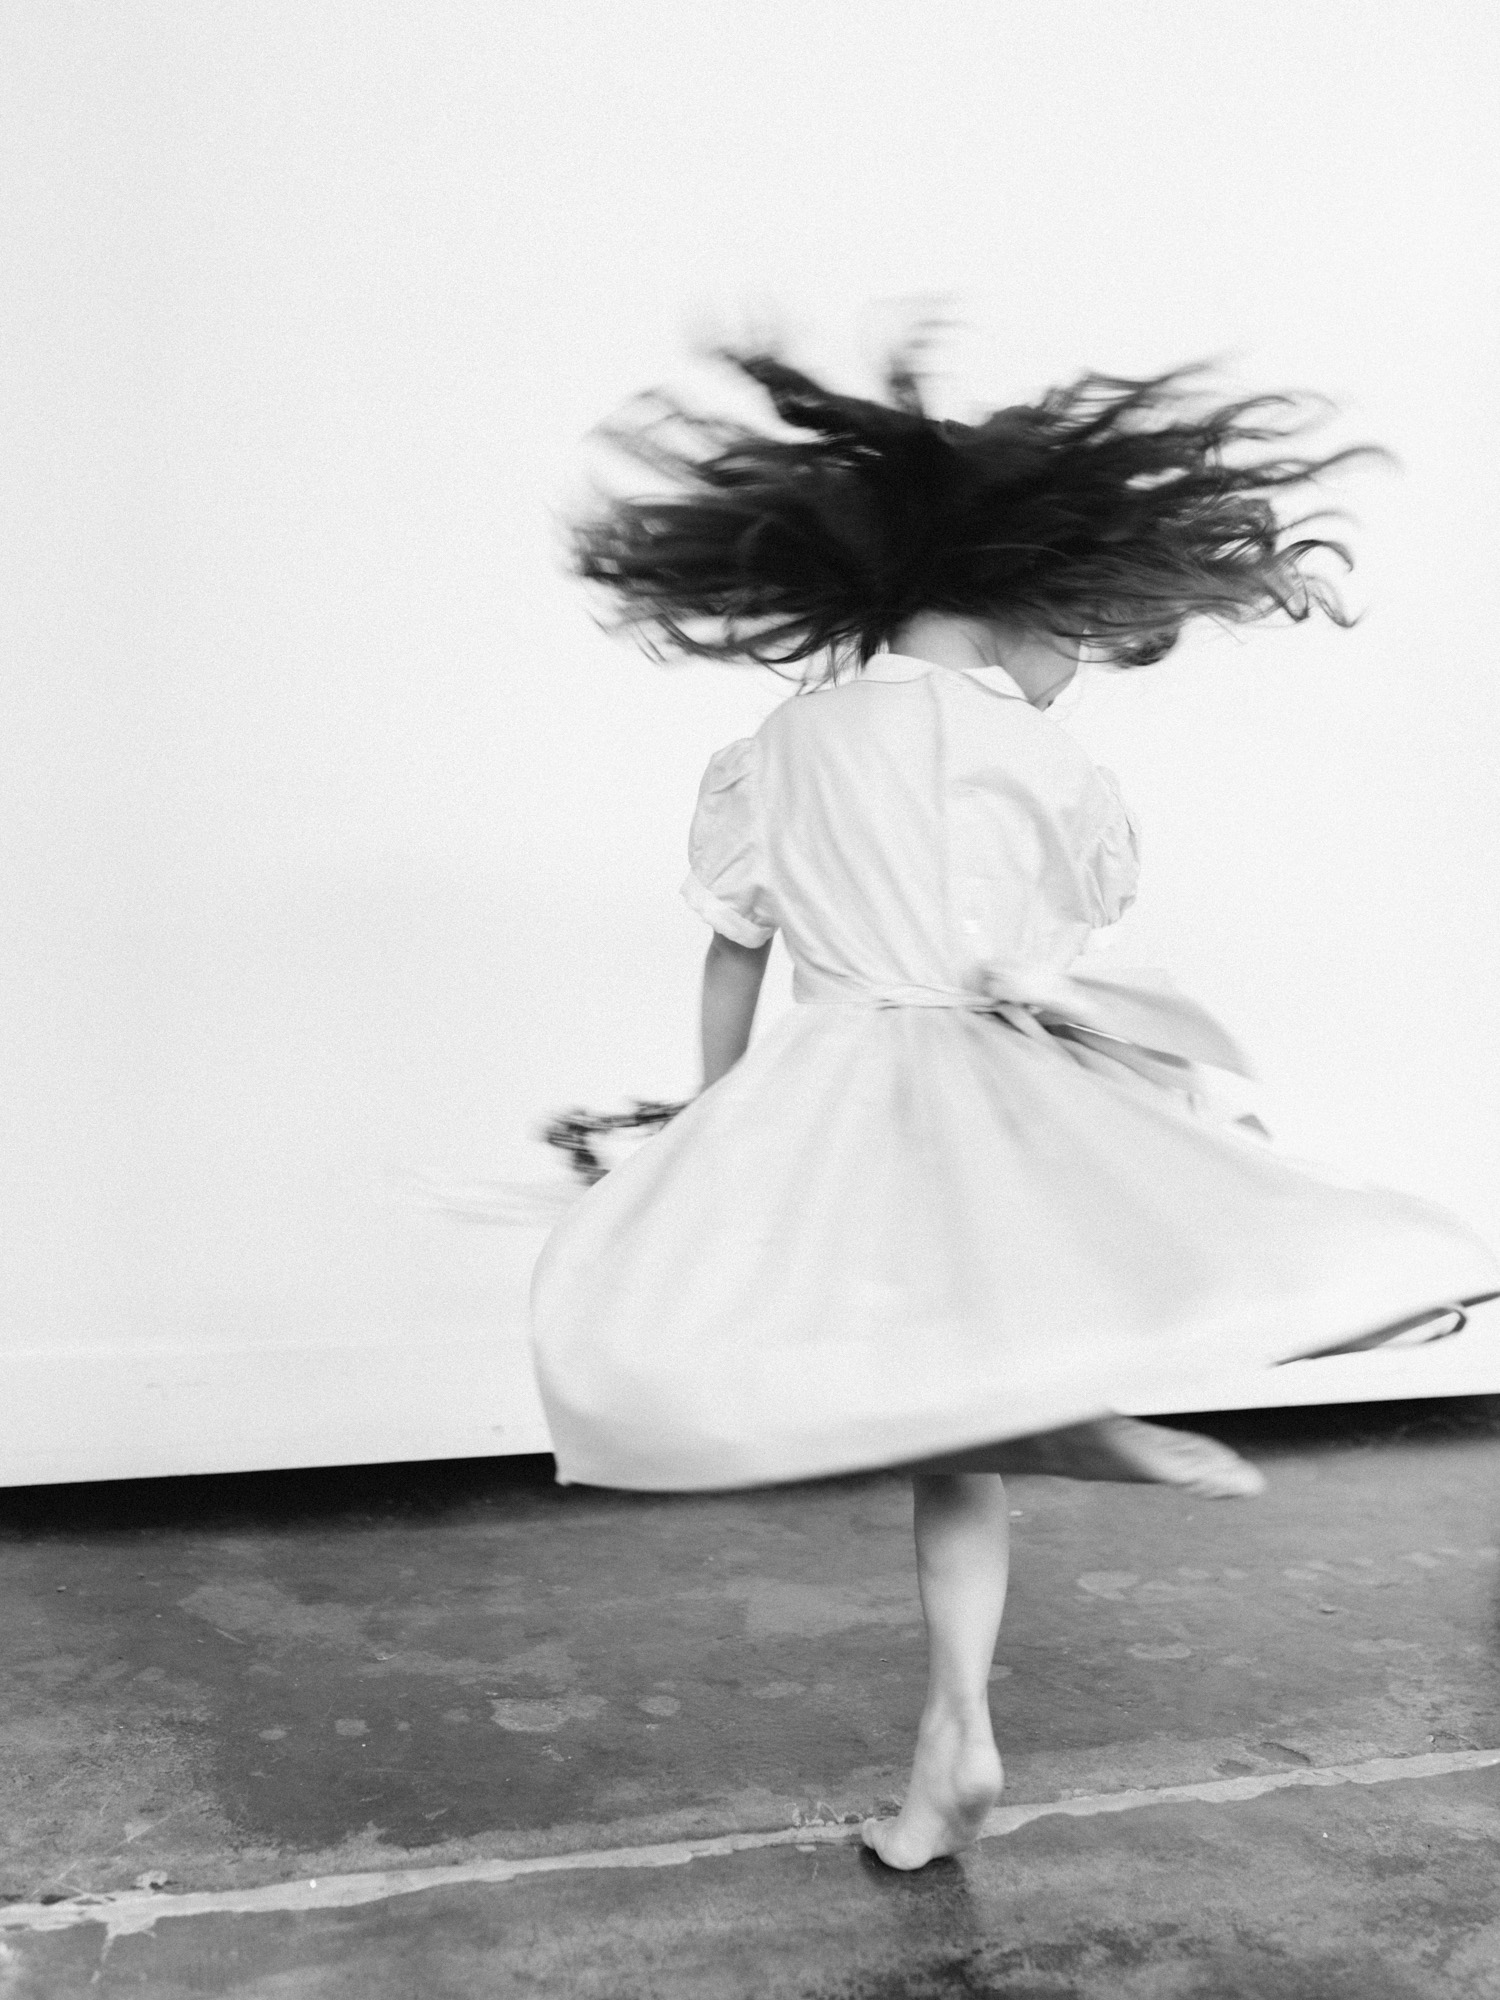 A young flower girl twirls in her dress with bare feet